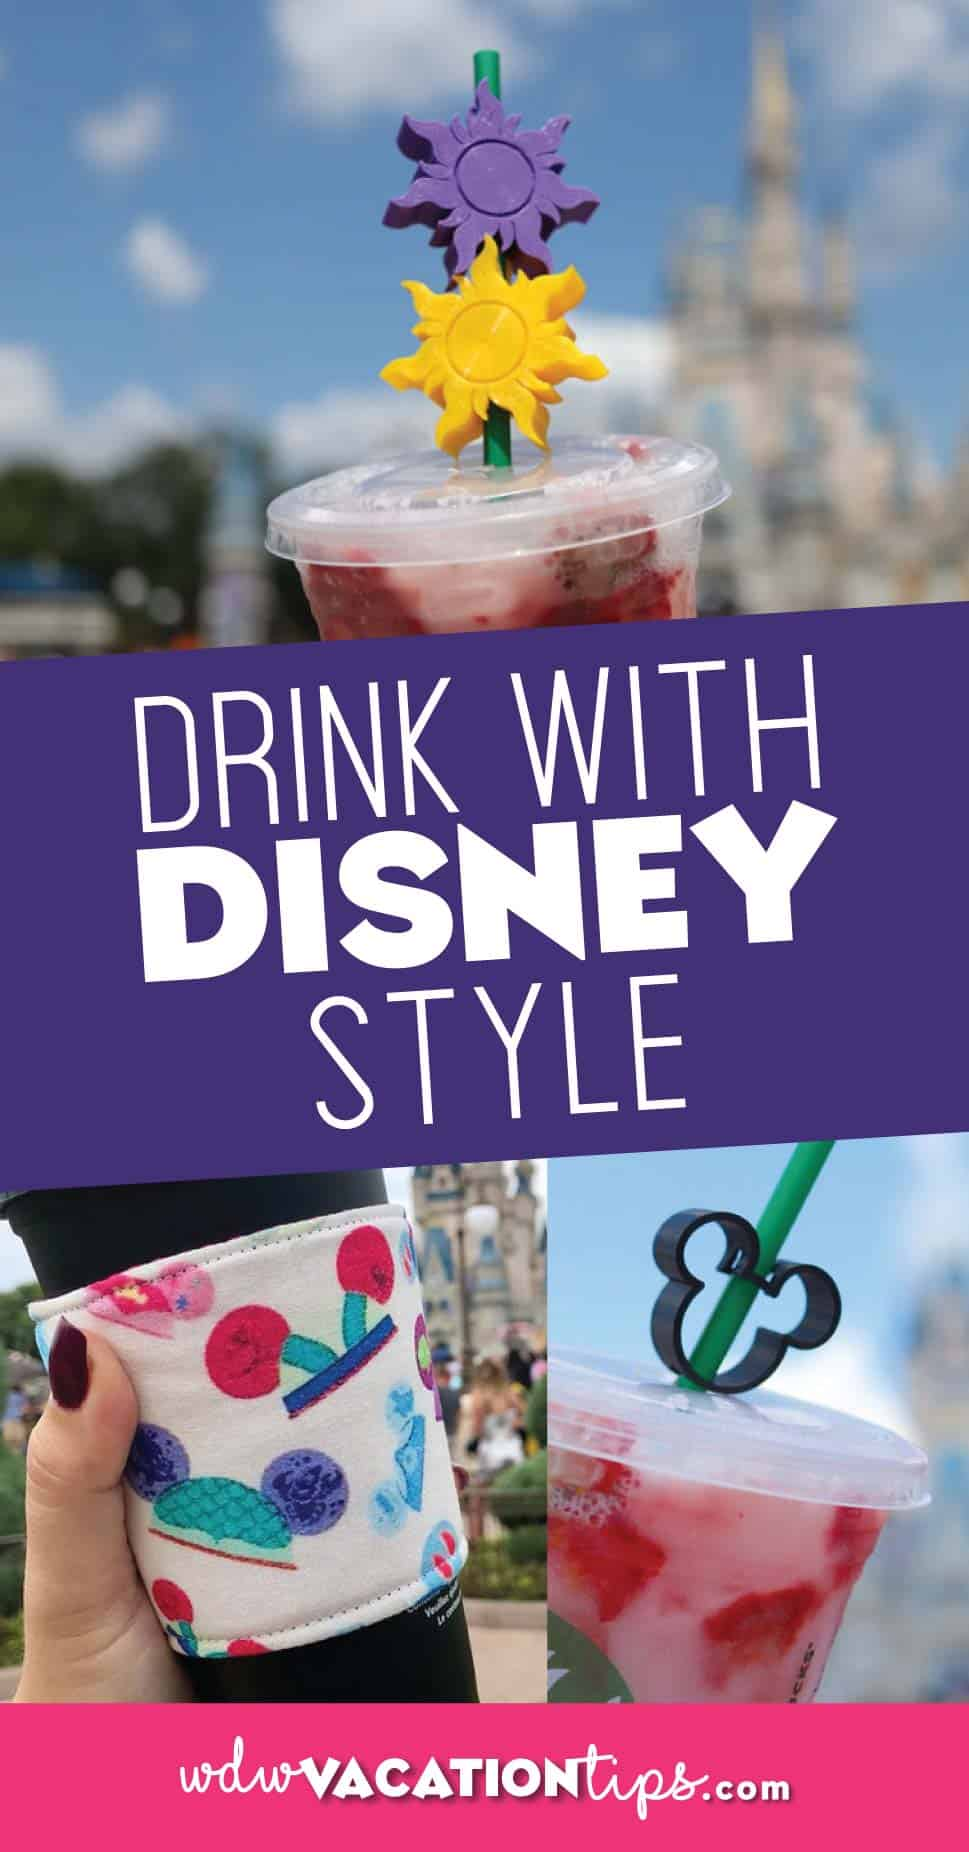 Drink with Disney Style